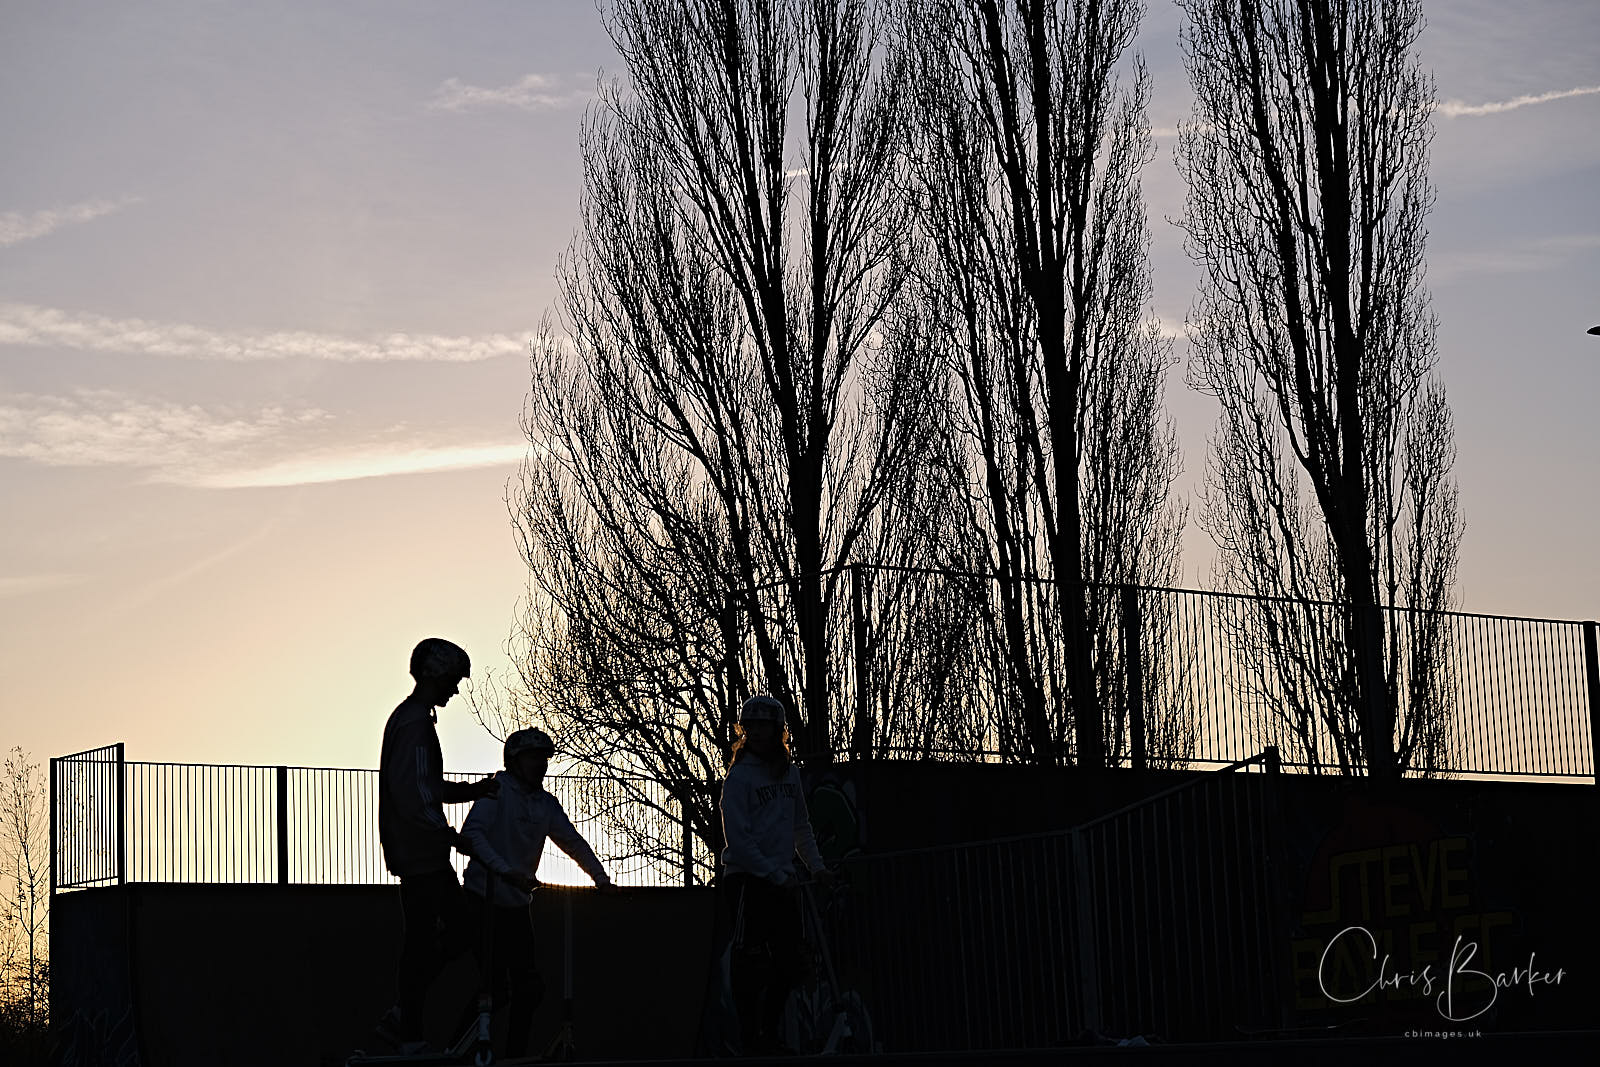 Silhouetted boys on half-pipe